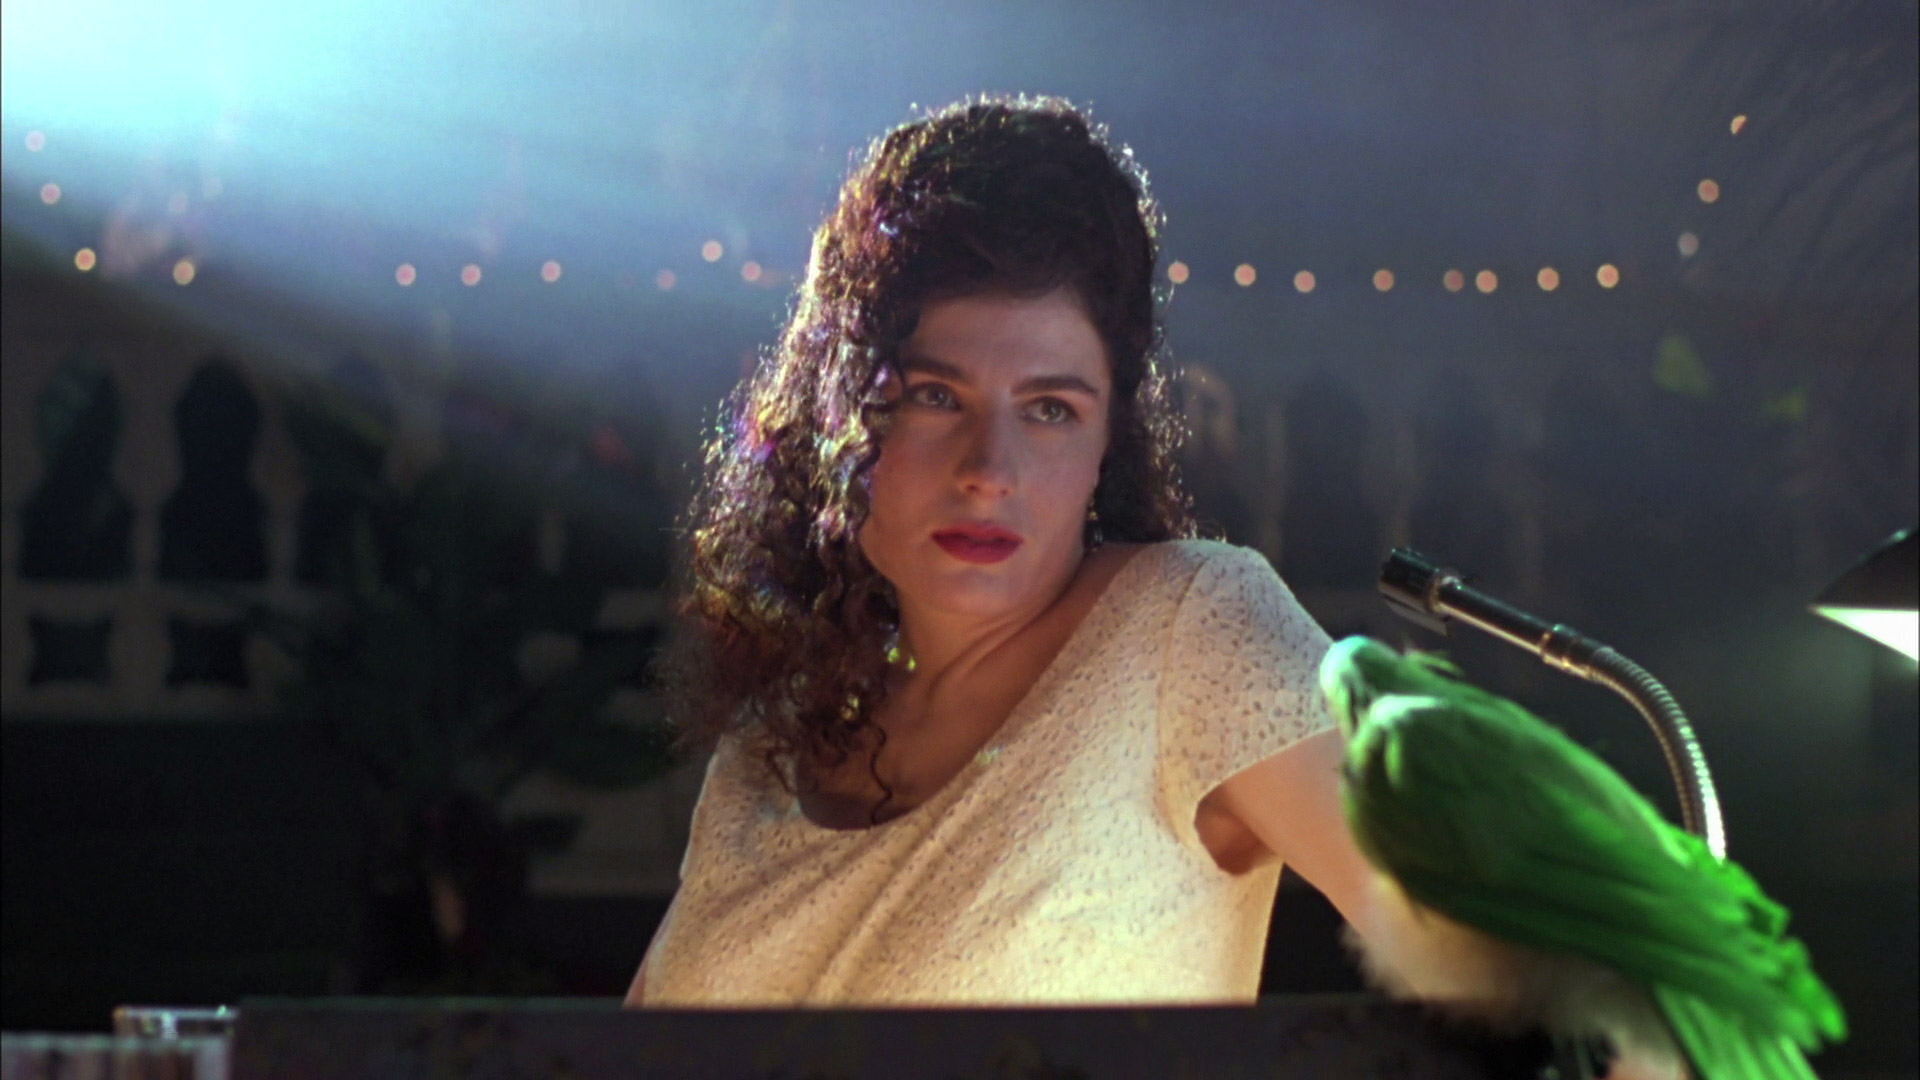 a review of the 1994 film exotica by atom egoyan Exotica is a 1995 film by atom egoyan, with most of the action taking place in a  gentleman's club called exotica it's a drama centered around the.